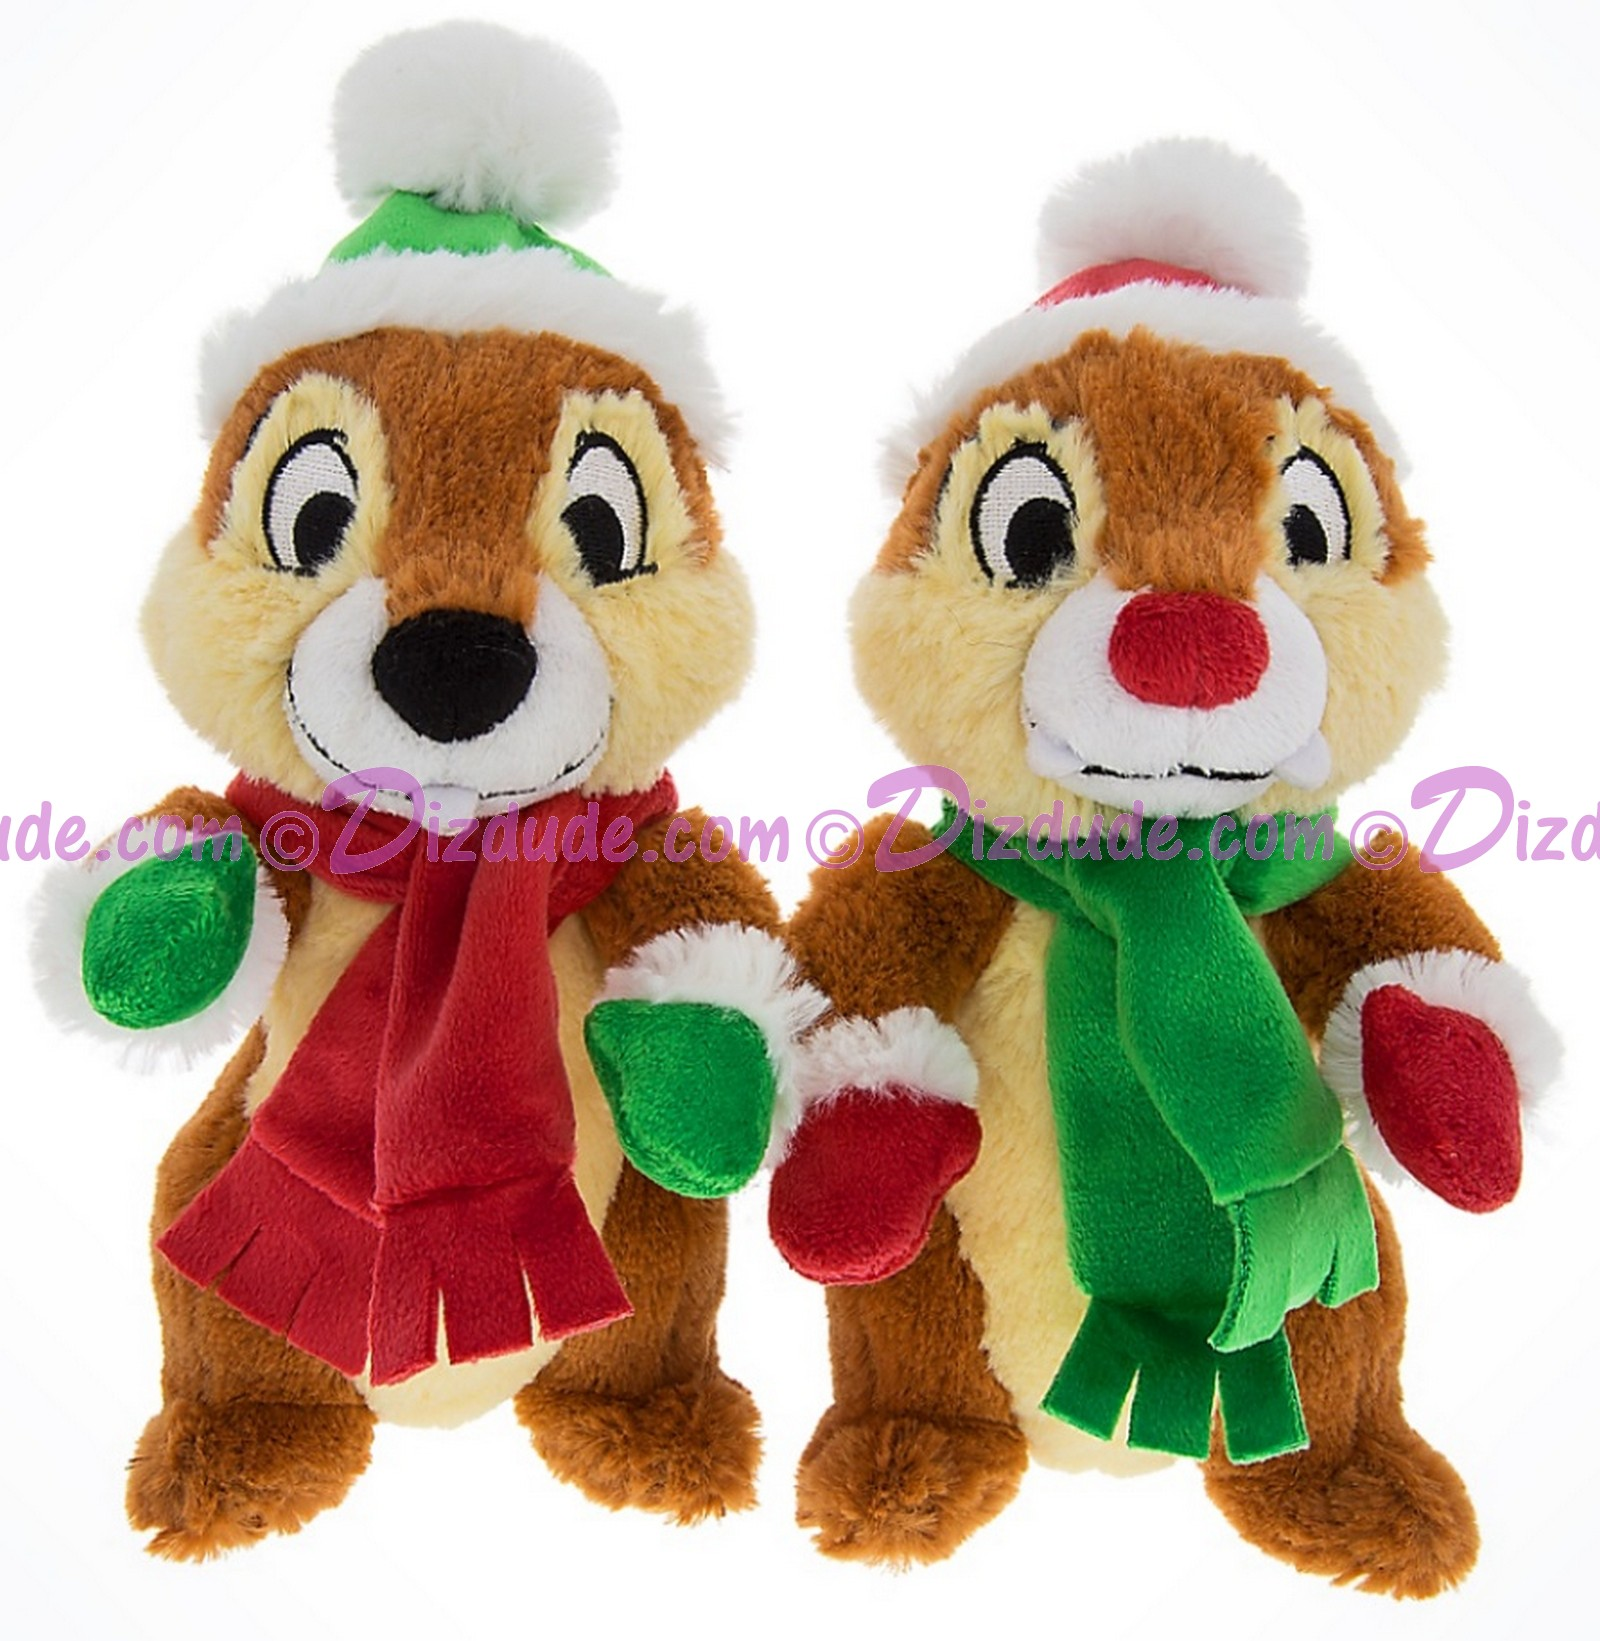 Disney Santa Elf's Chip 'N' Dale 7inch Plush Set © Dizdude.com